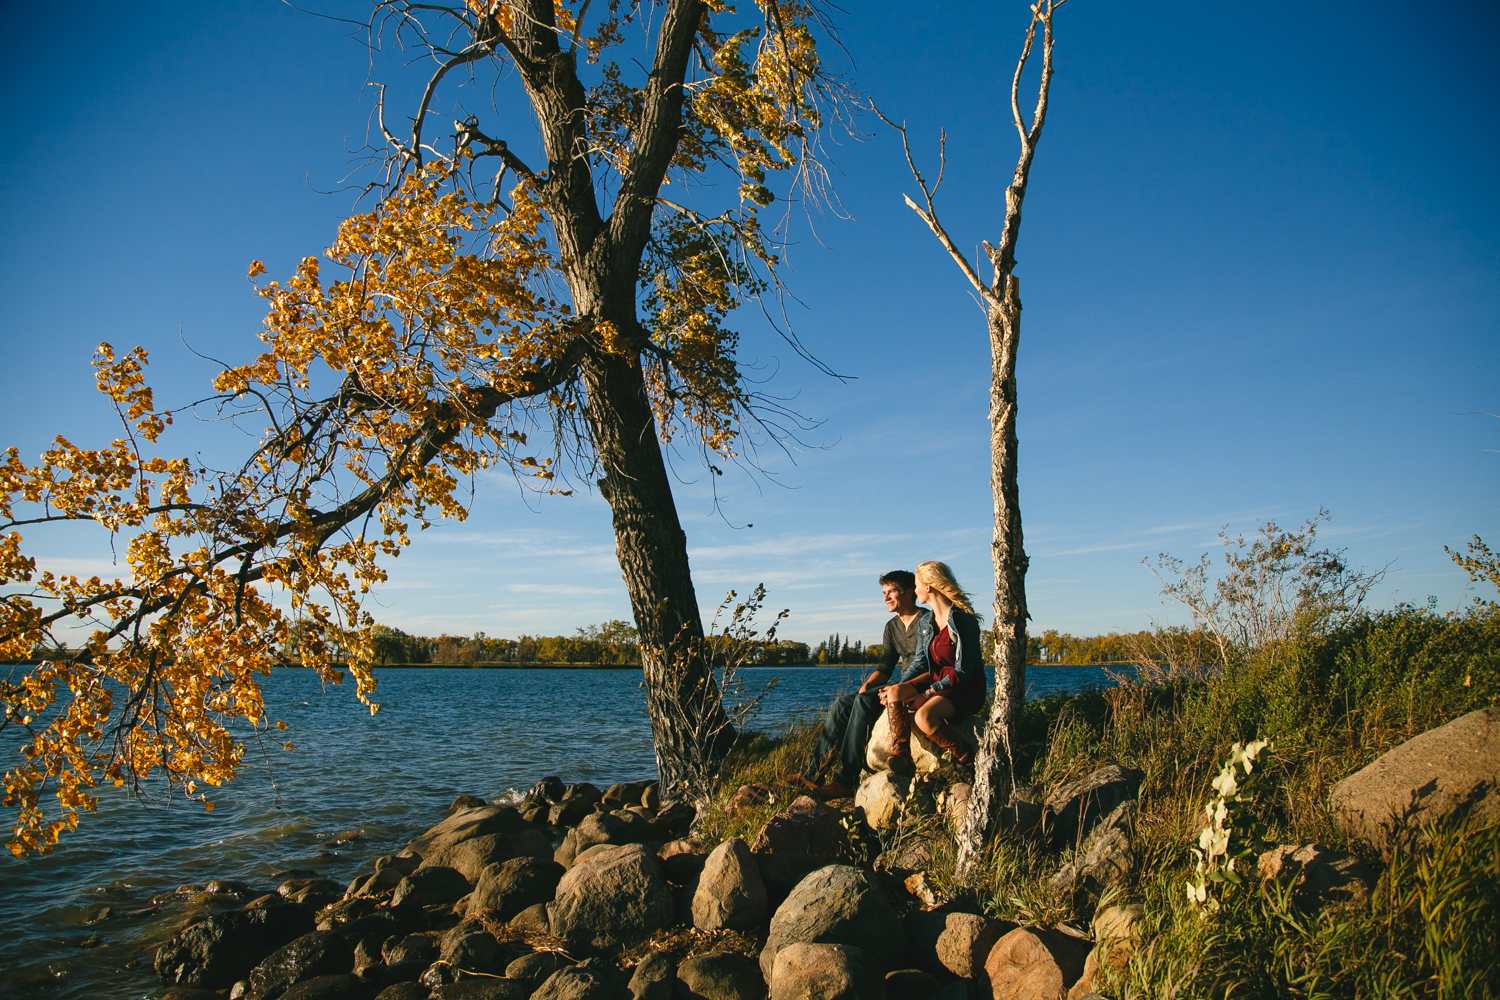 lethbridge-engagement-photography-love-and-be-loved-photography-steven-marlene-park-lake-engaged-picture-image-photo-13.jpg